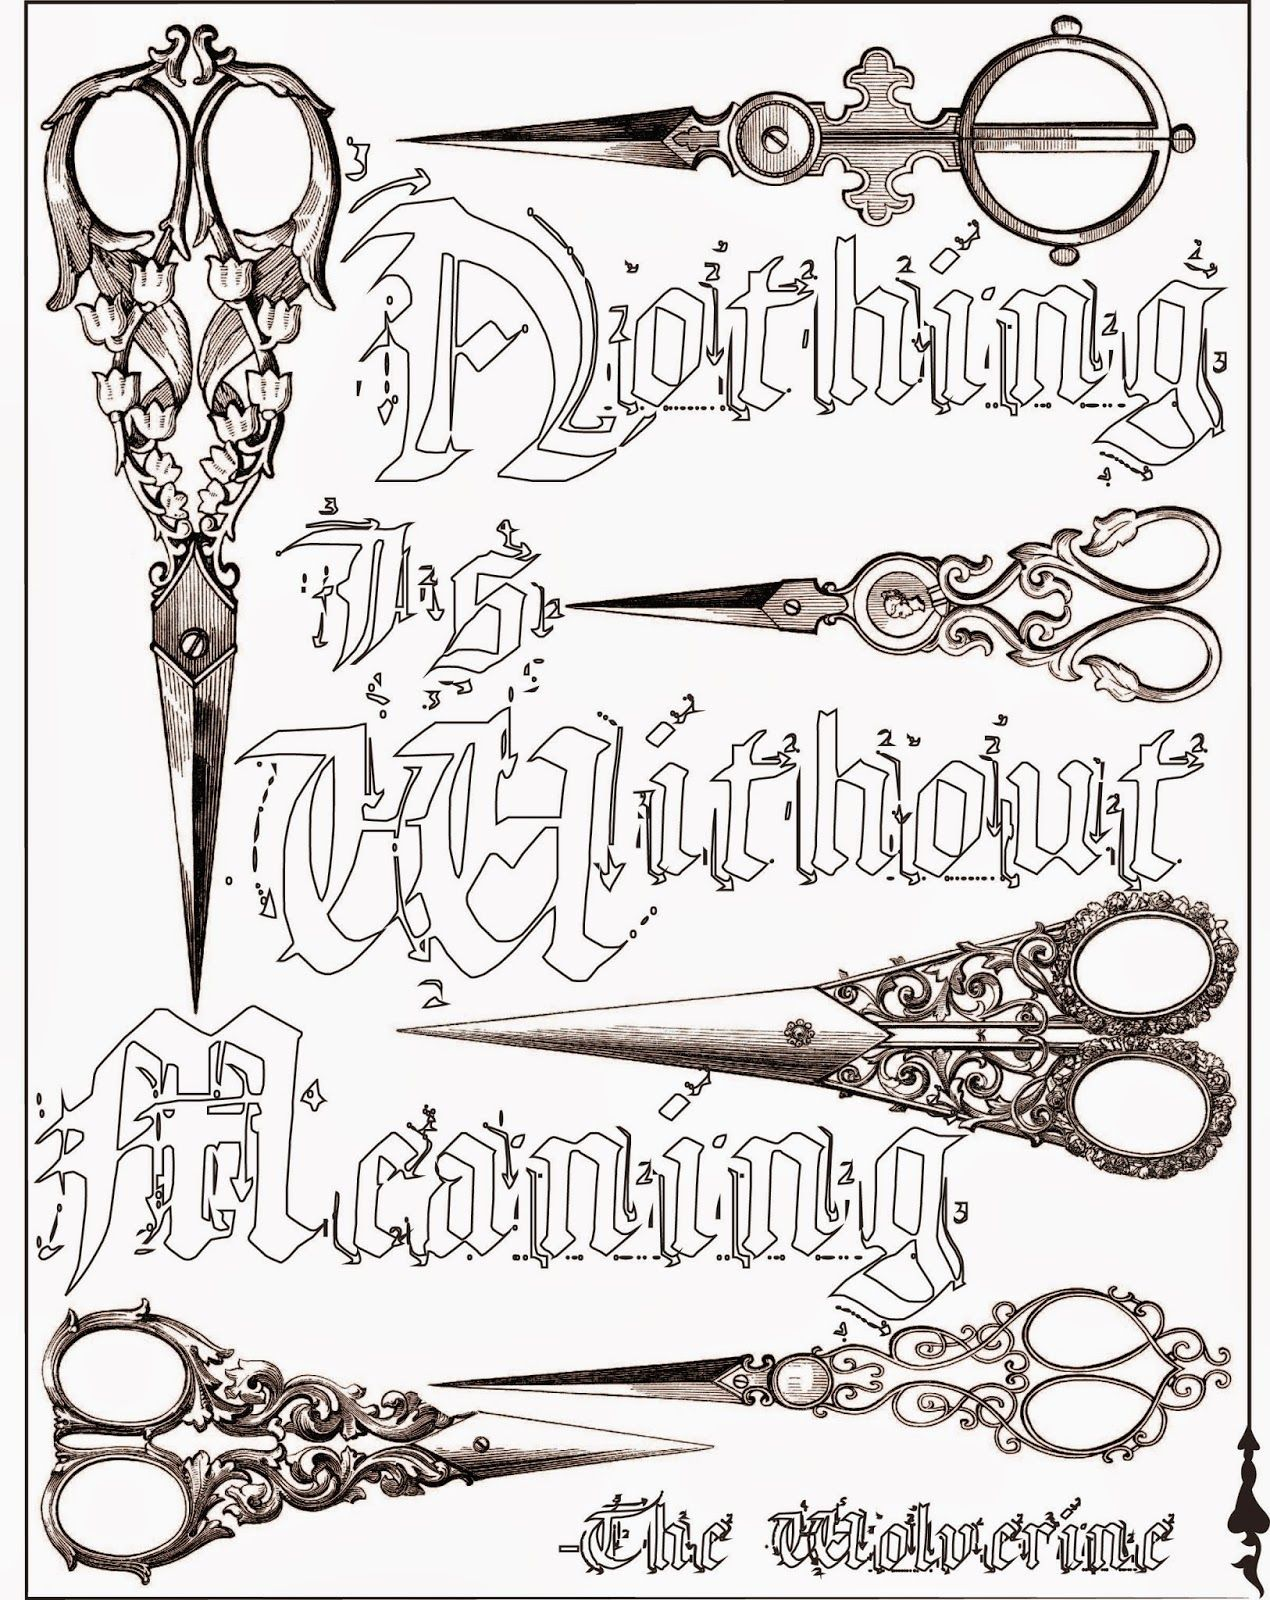 Adult Coloring Pages And Craft Projects Designed By Stefanie Girard